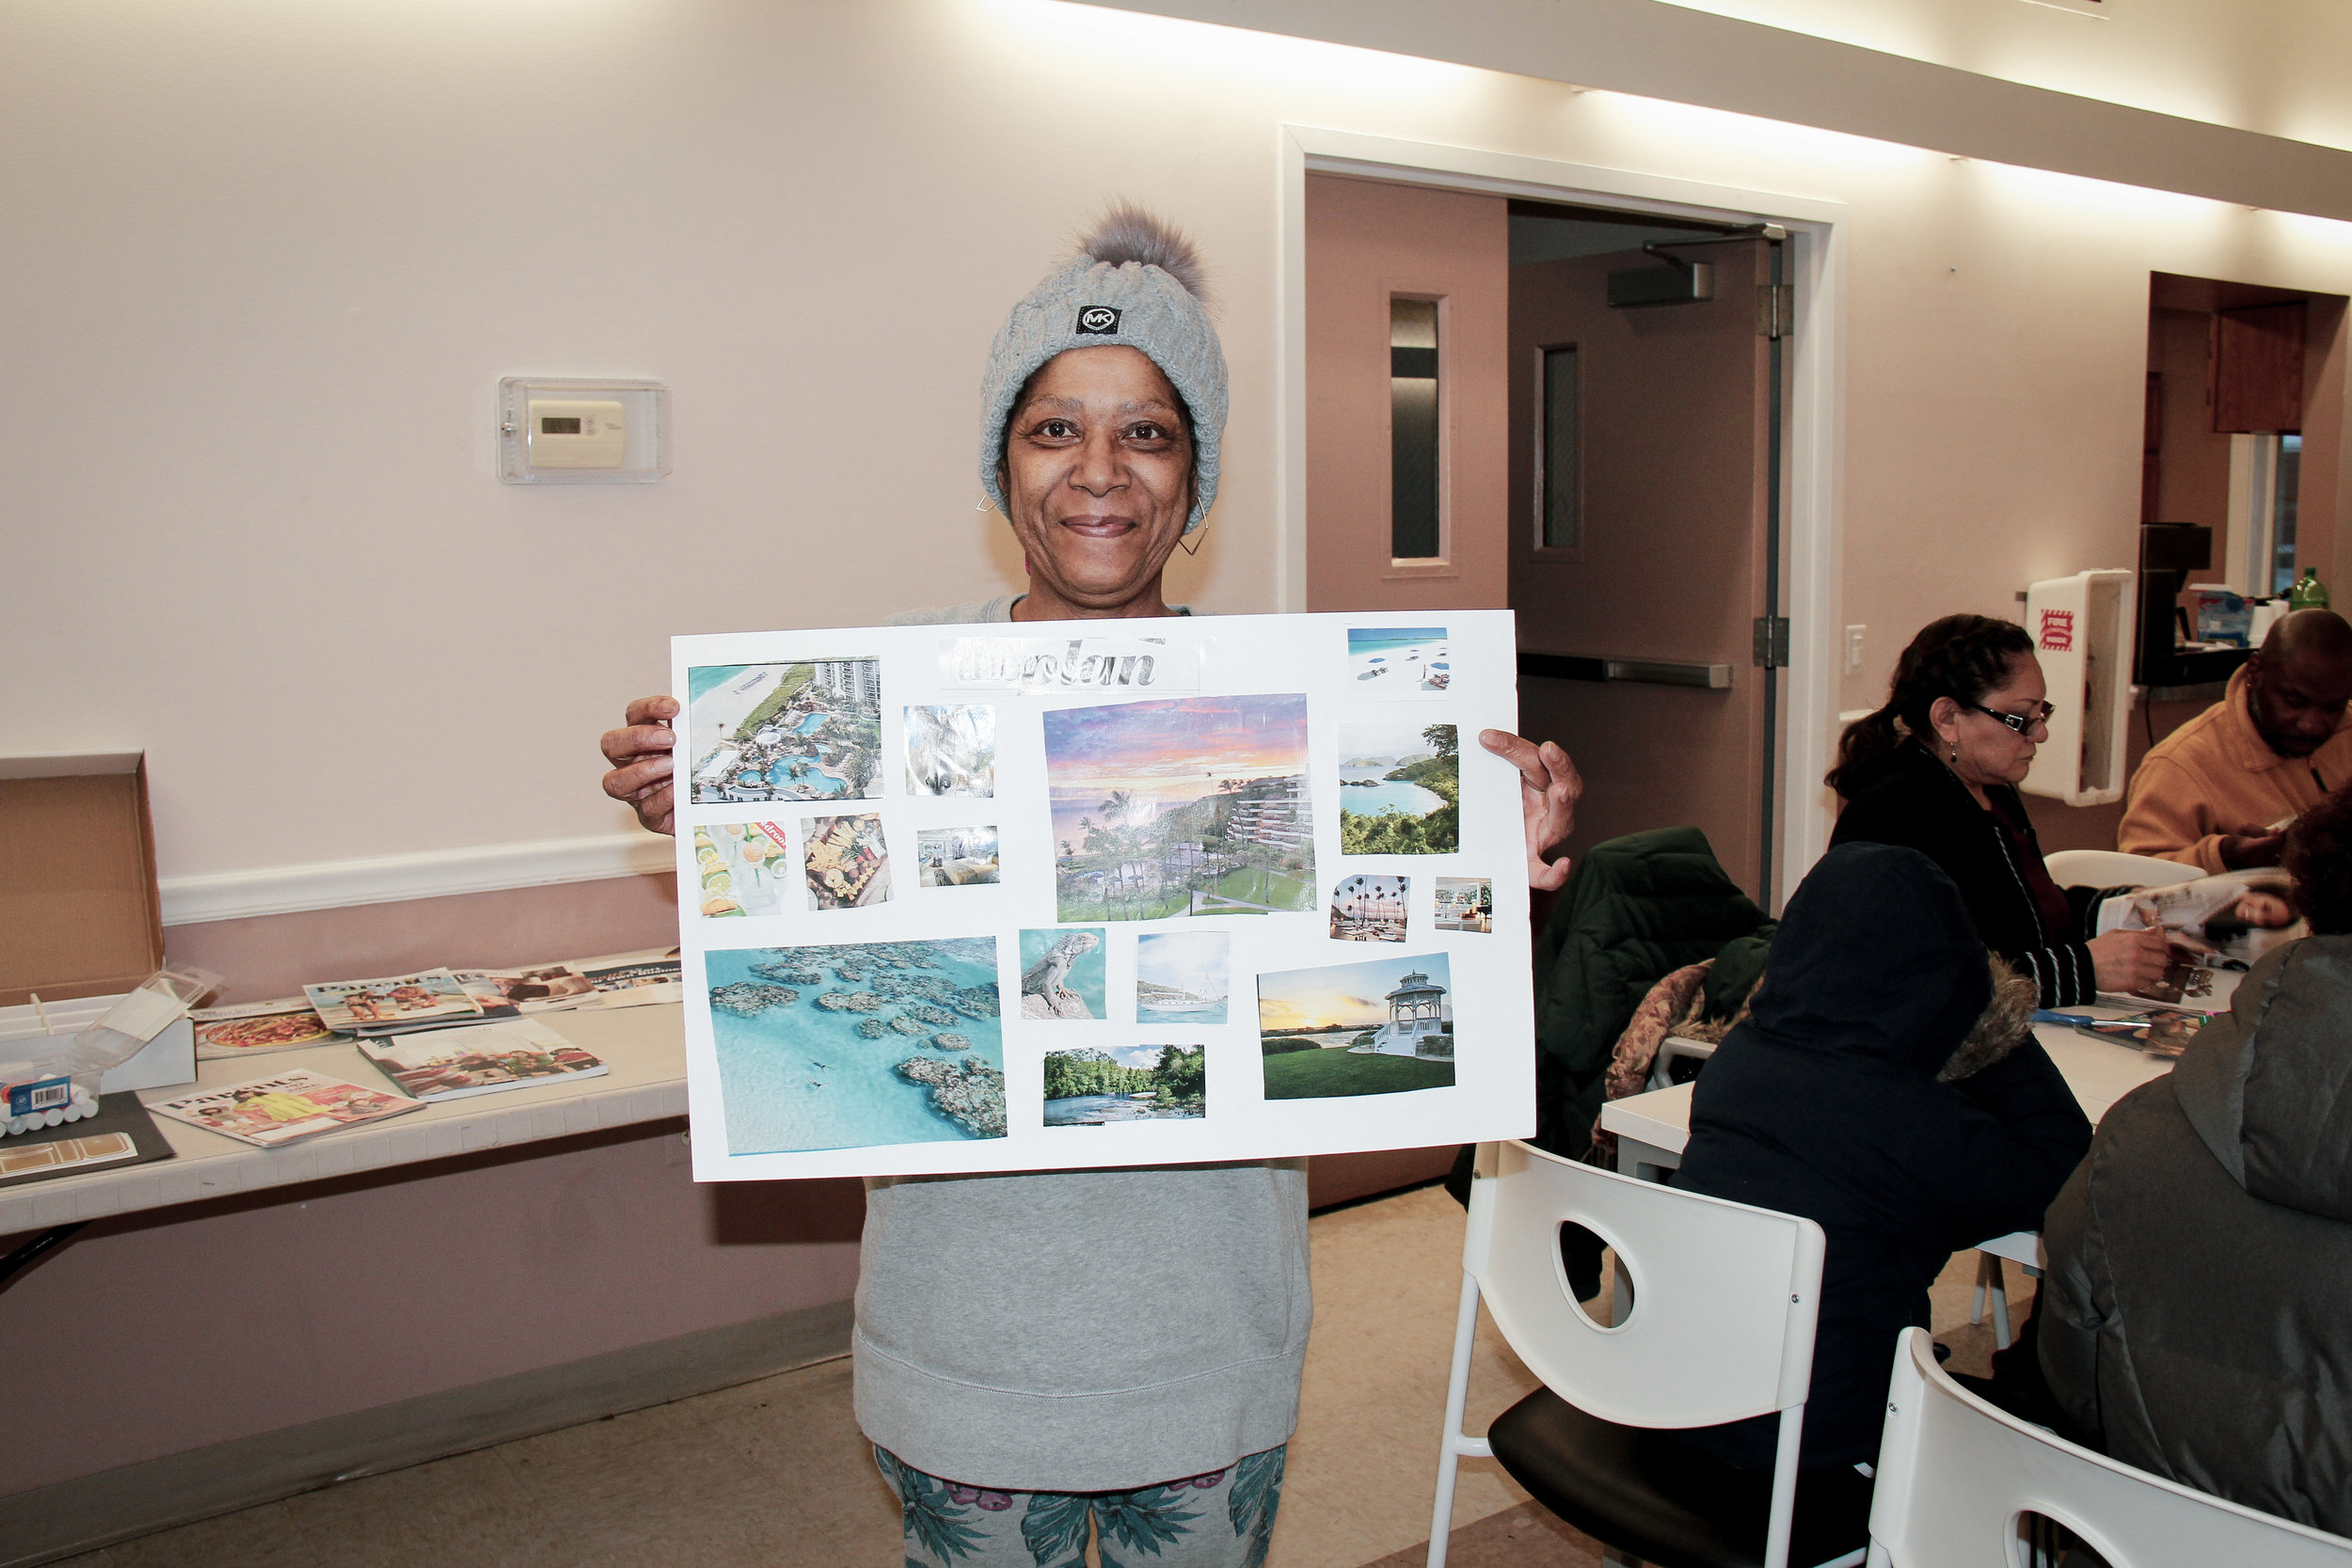 A resident at Bay Meadow Apartments shows off the vision board she made at a community gathering hosted by the Compass FSS program earlier this year